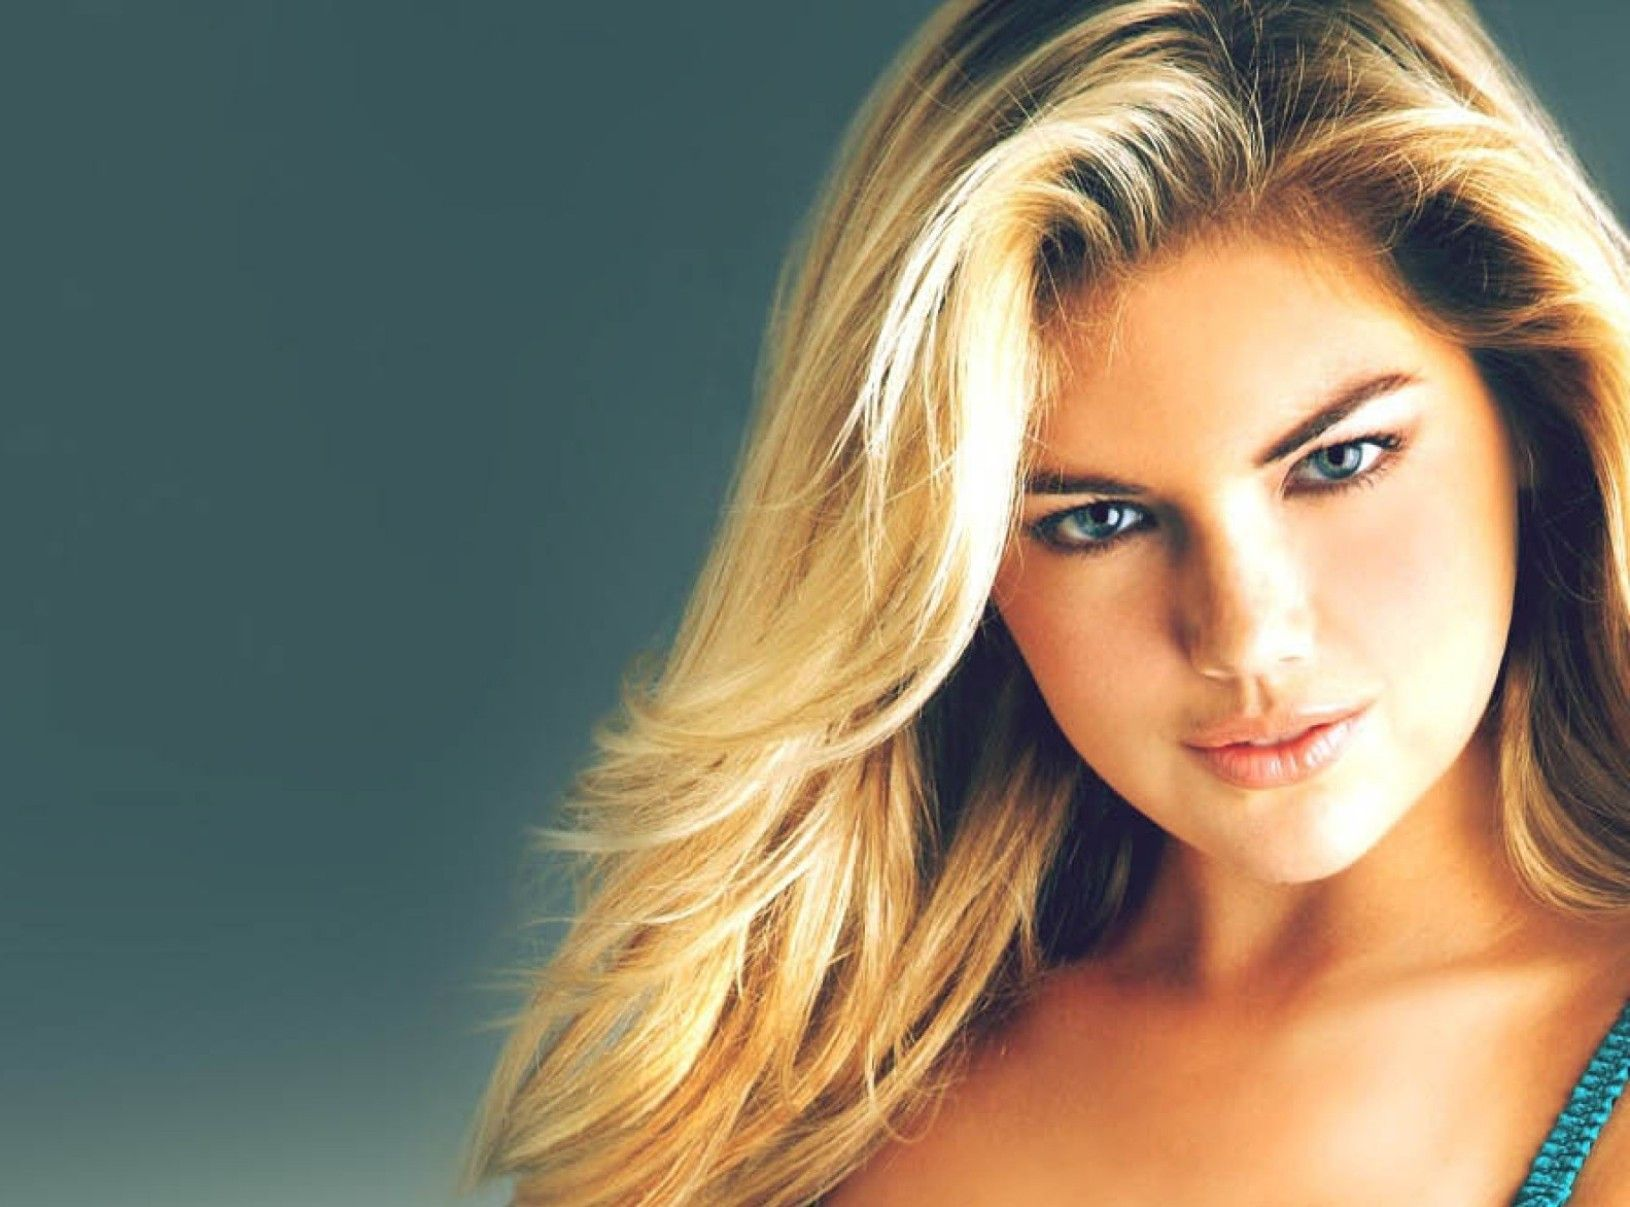 Kate upton wallpaper hd backgrounds beauty pie pinterest kate upton wallpaper hd backgrounds voltagebd Image collections